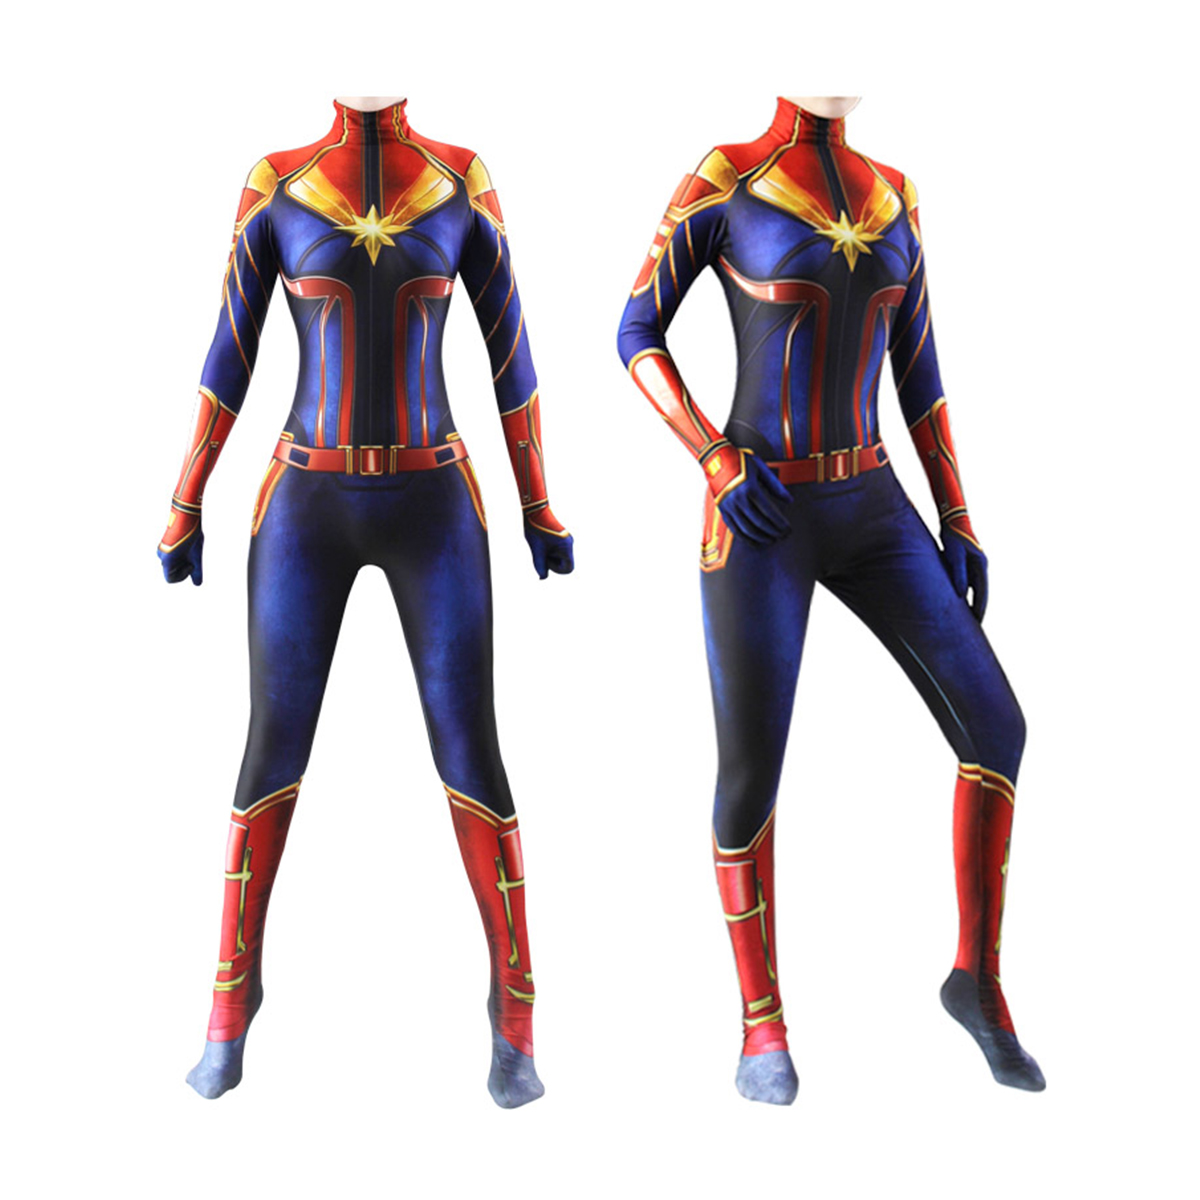 Captain Marvel Women Girls Costume Kids Cosplay Lycra Jumpsuit Party Bodysuit Ebay With the release of the first photo of brie larson in costume in the upcoming captain marvel film (it was a candid set photo, so we don't know for sure what the context of the costume will be), it made us think about the many different. details about captain marvel women girls costume kids cosplay lycra jumpsuit party bodysuit